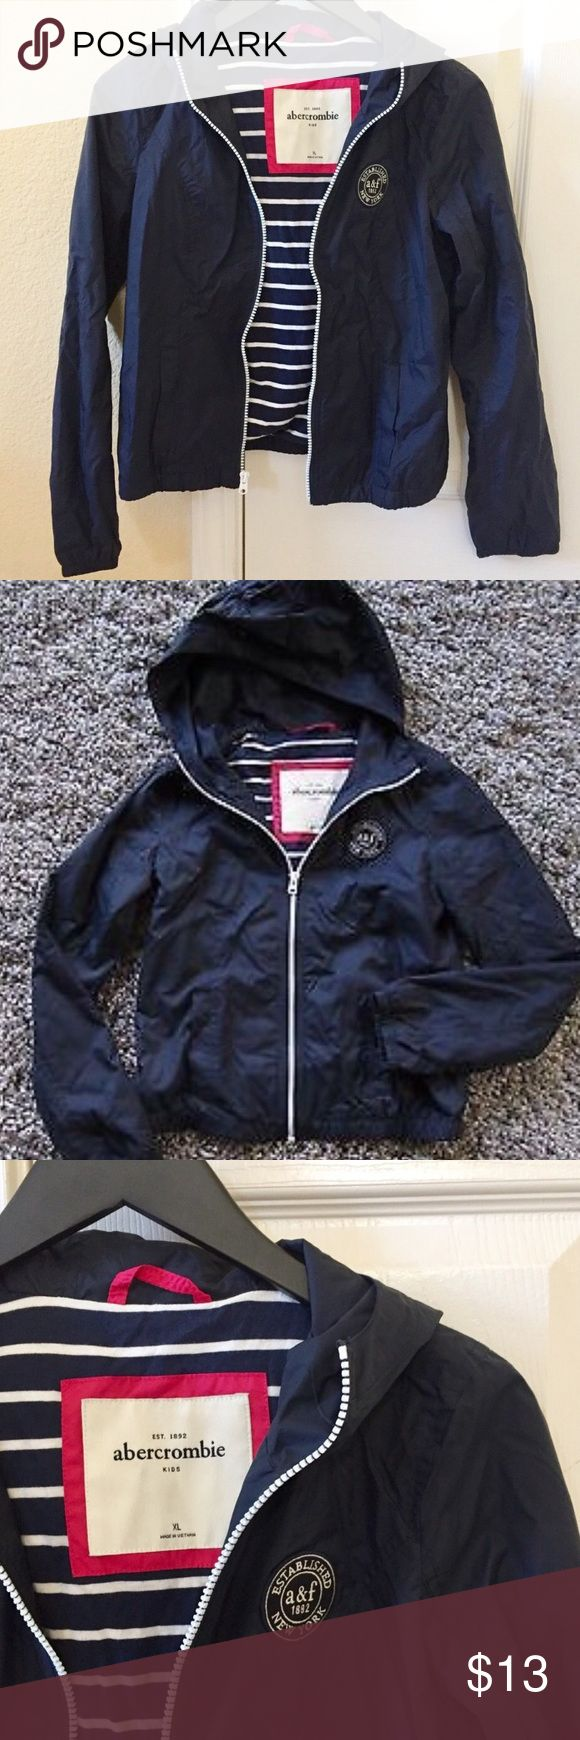 Abercrombie Girl's Rain Jacket - XL NWOT! Navy rain jacket with cotton interior lining from Abercrombie. Size XL; fits adult PXS / 00P, but this particular garment rubs short. Perfect condition. Selling because too small on me abercrombie kids Jackets & Coats